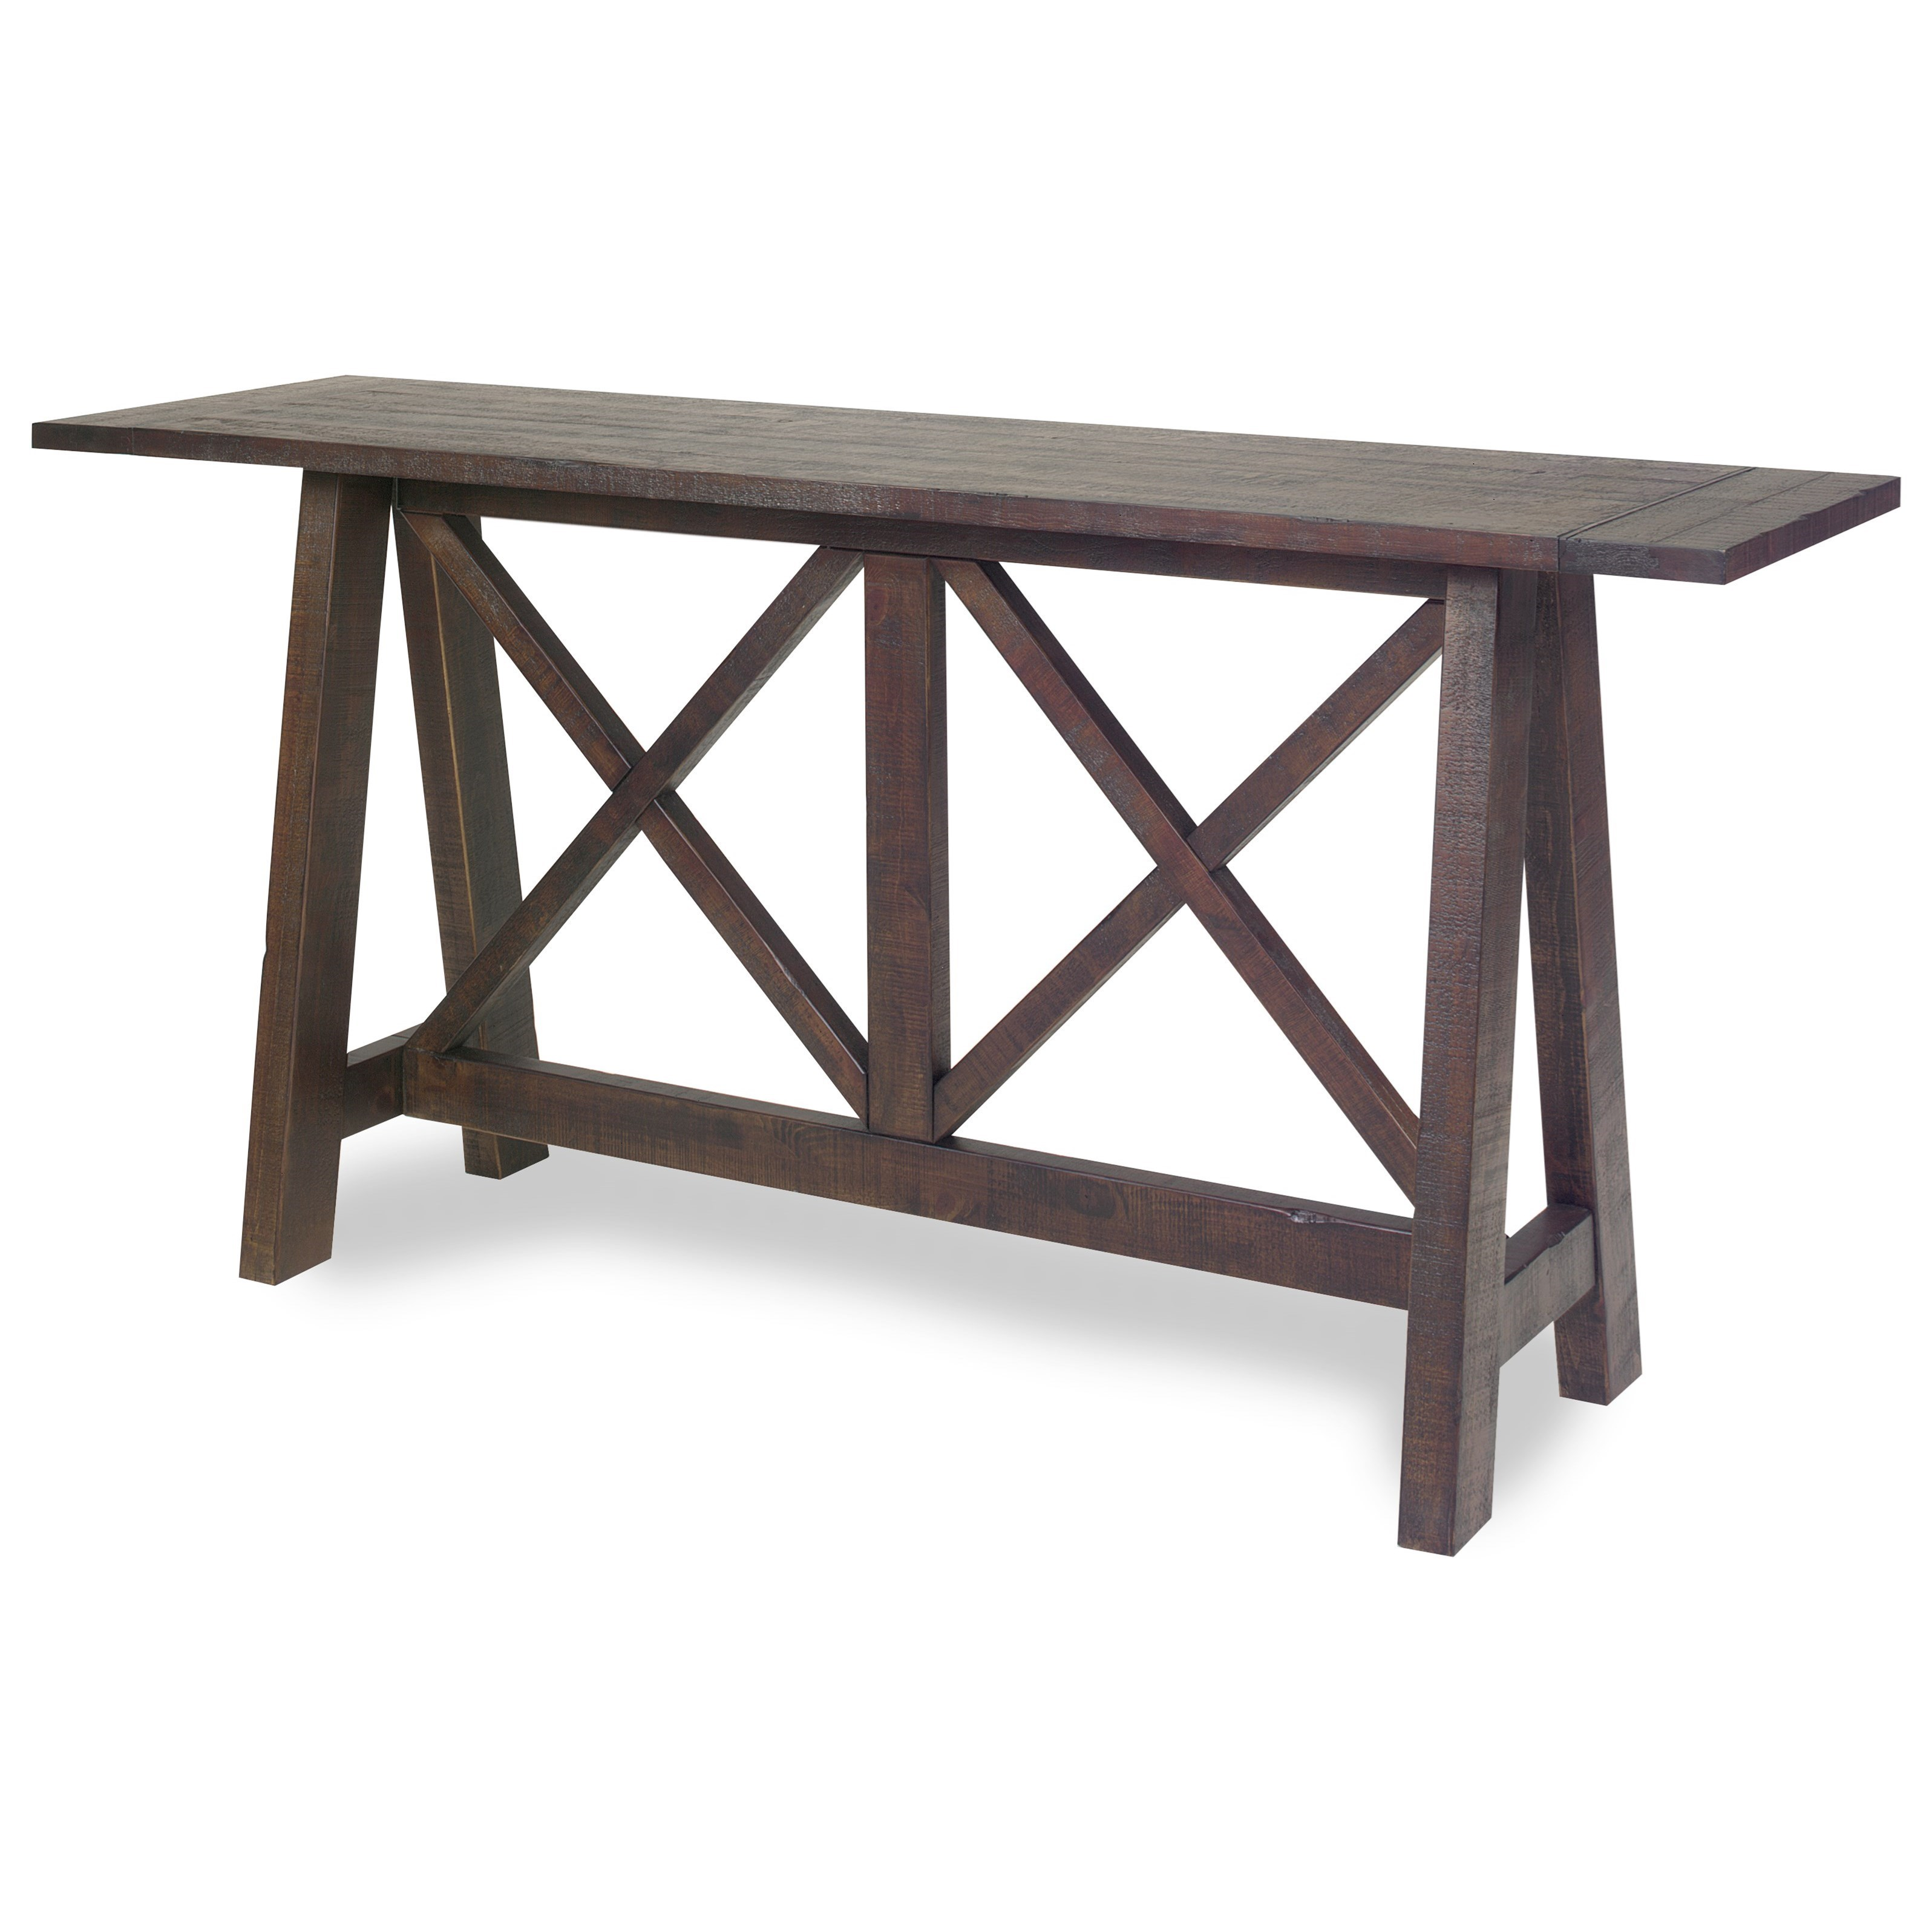 Progressive furniture vineyard a732 70 distressed solid for Sofa table 70